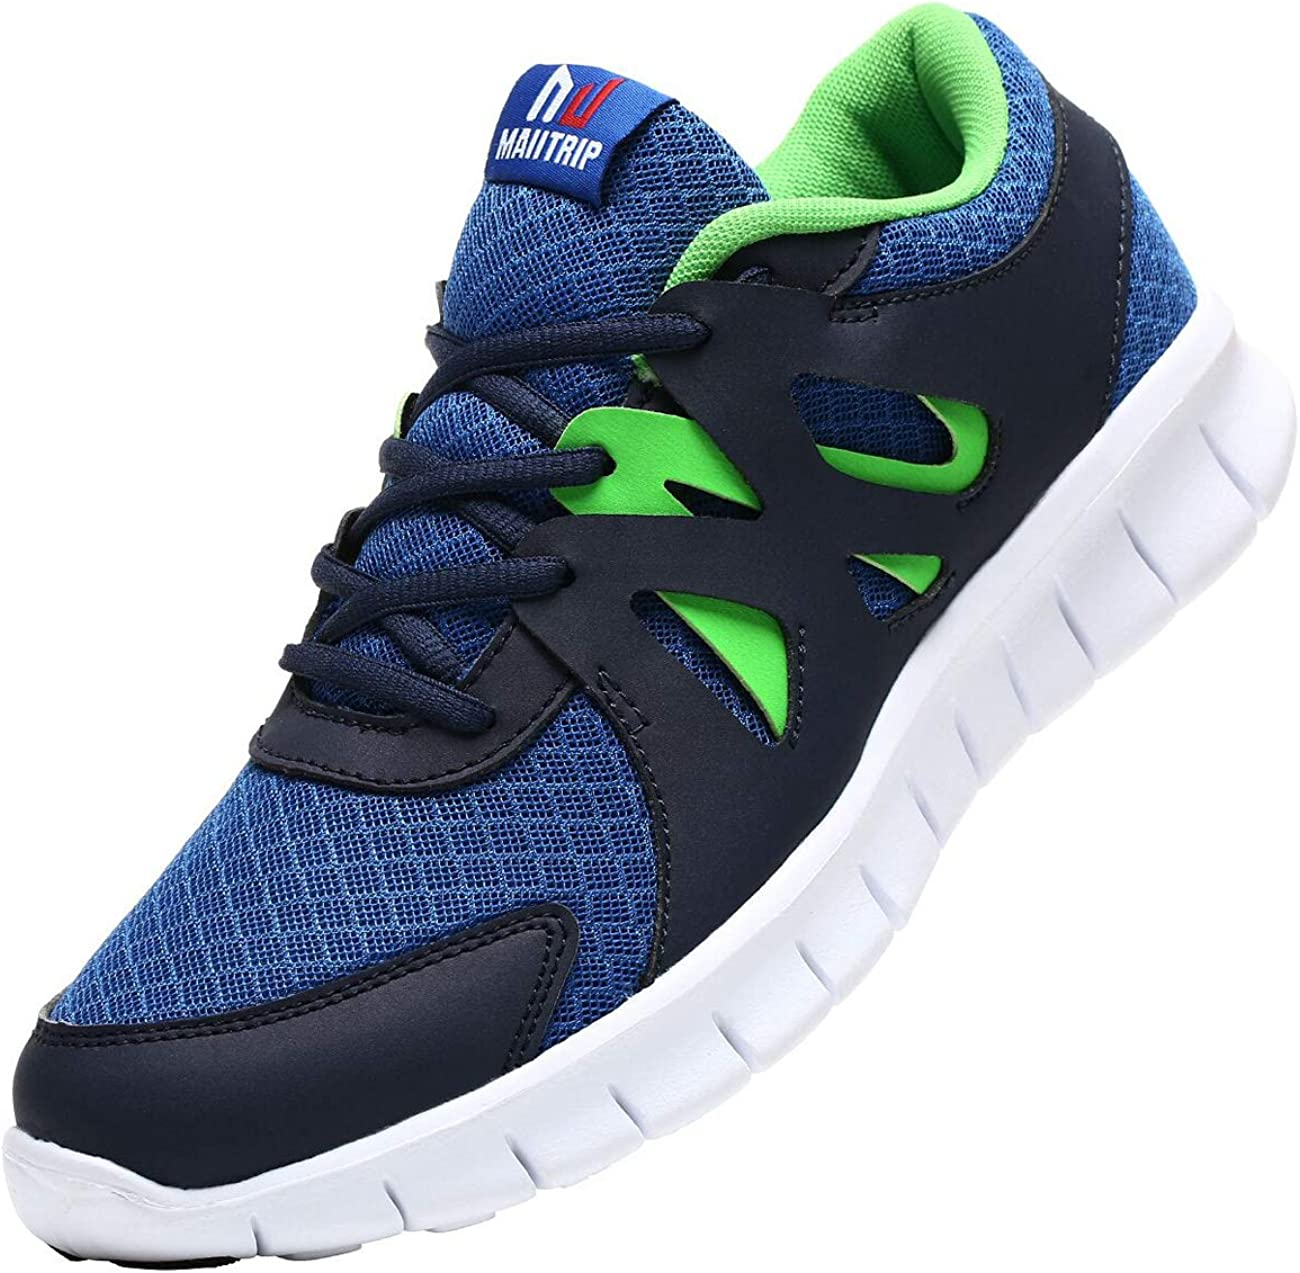 MAIITRIP Men's Trainers Road Running Shoes Casual Mesh Athletic Sneakers for Gym Sports Fitness